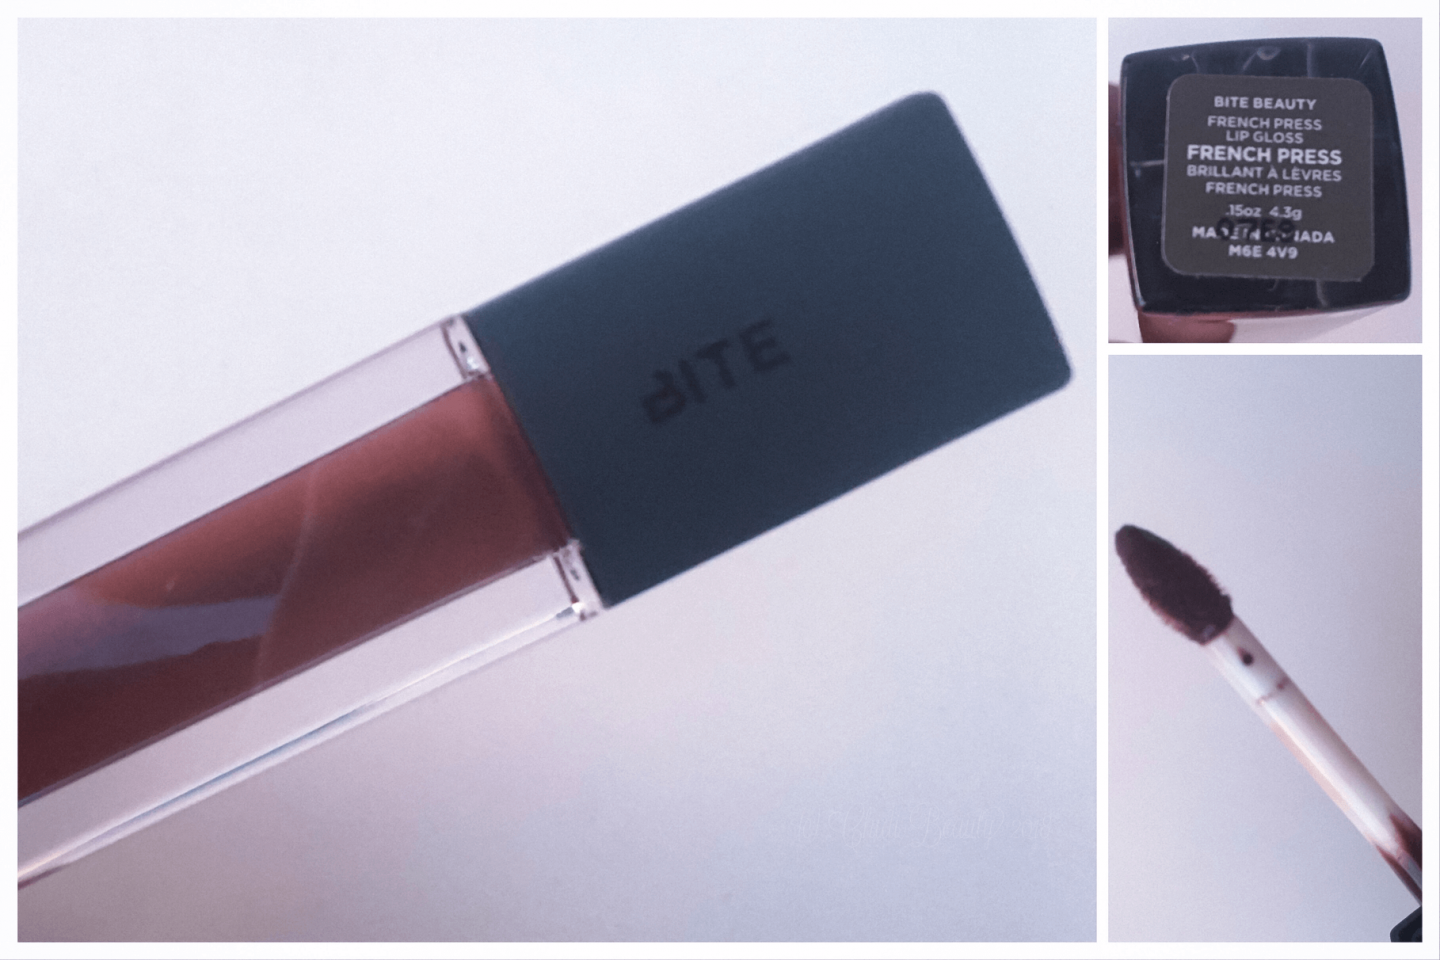 Bite Beauty French Press Lip Gloss • chidibeauty.com